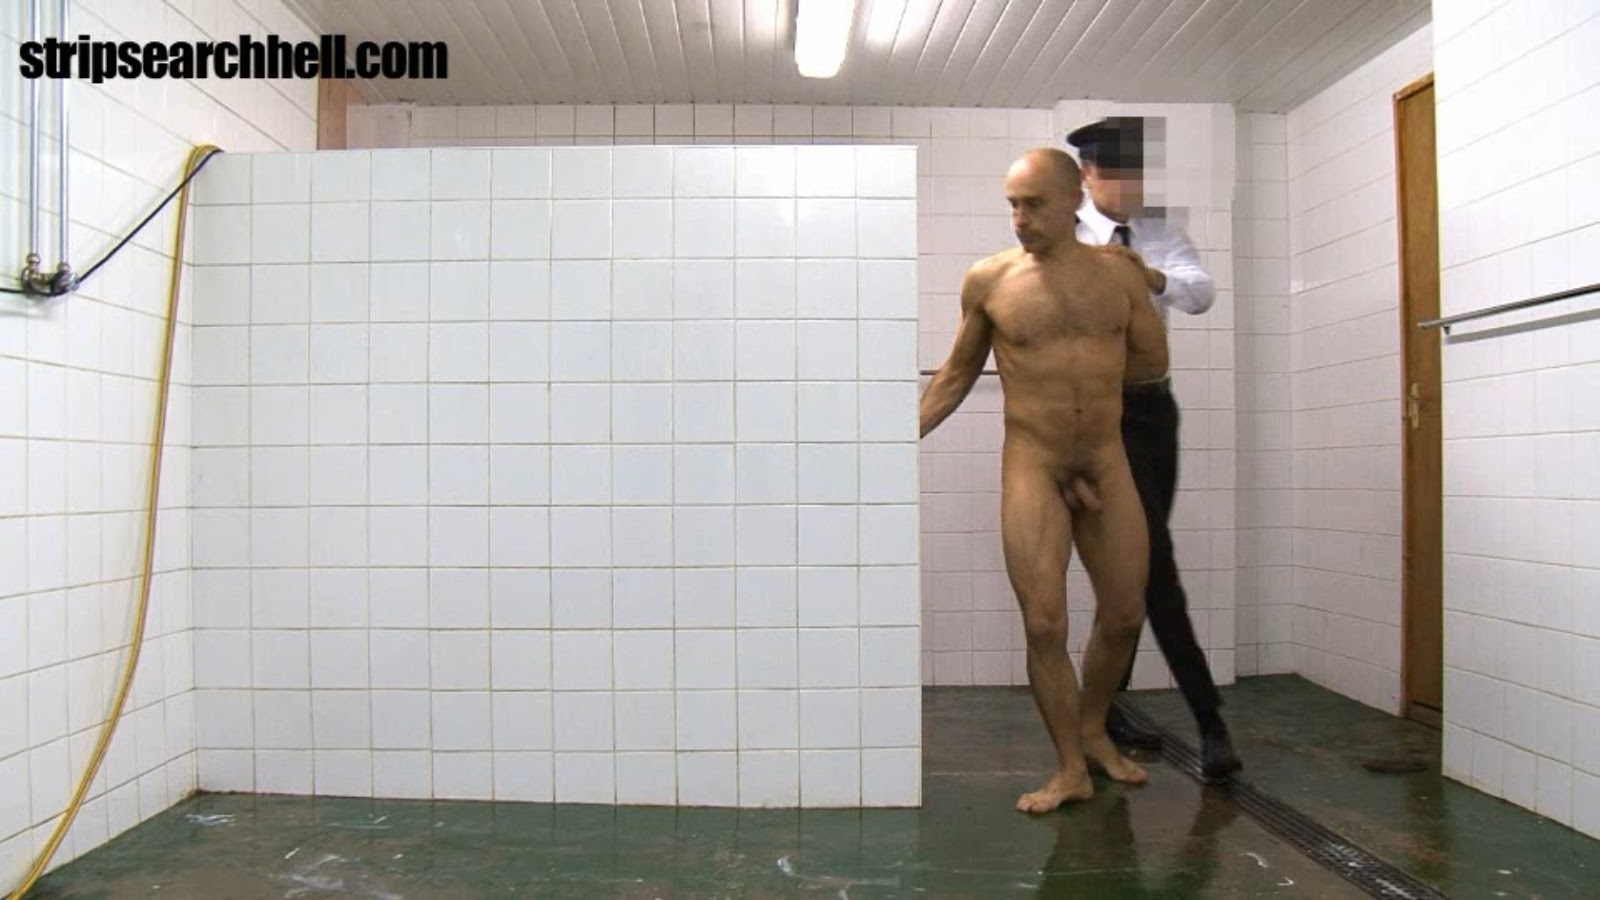 springer-jail-shower-room-sex-video-butt-pix